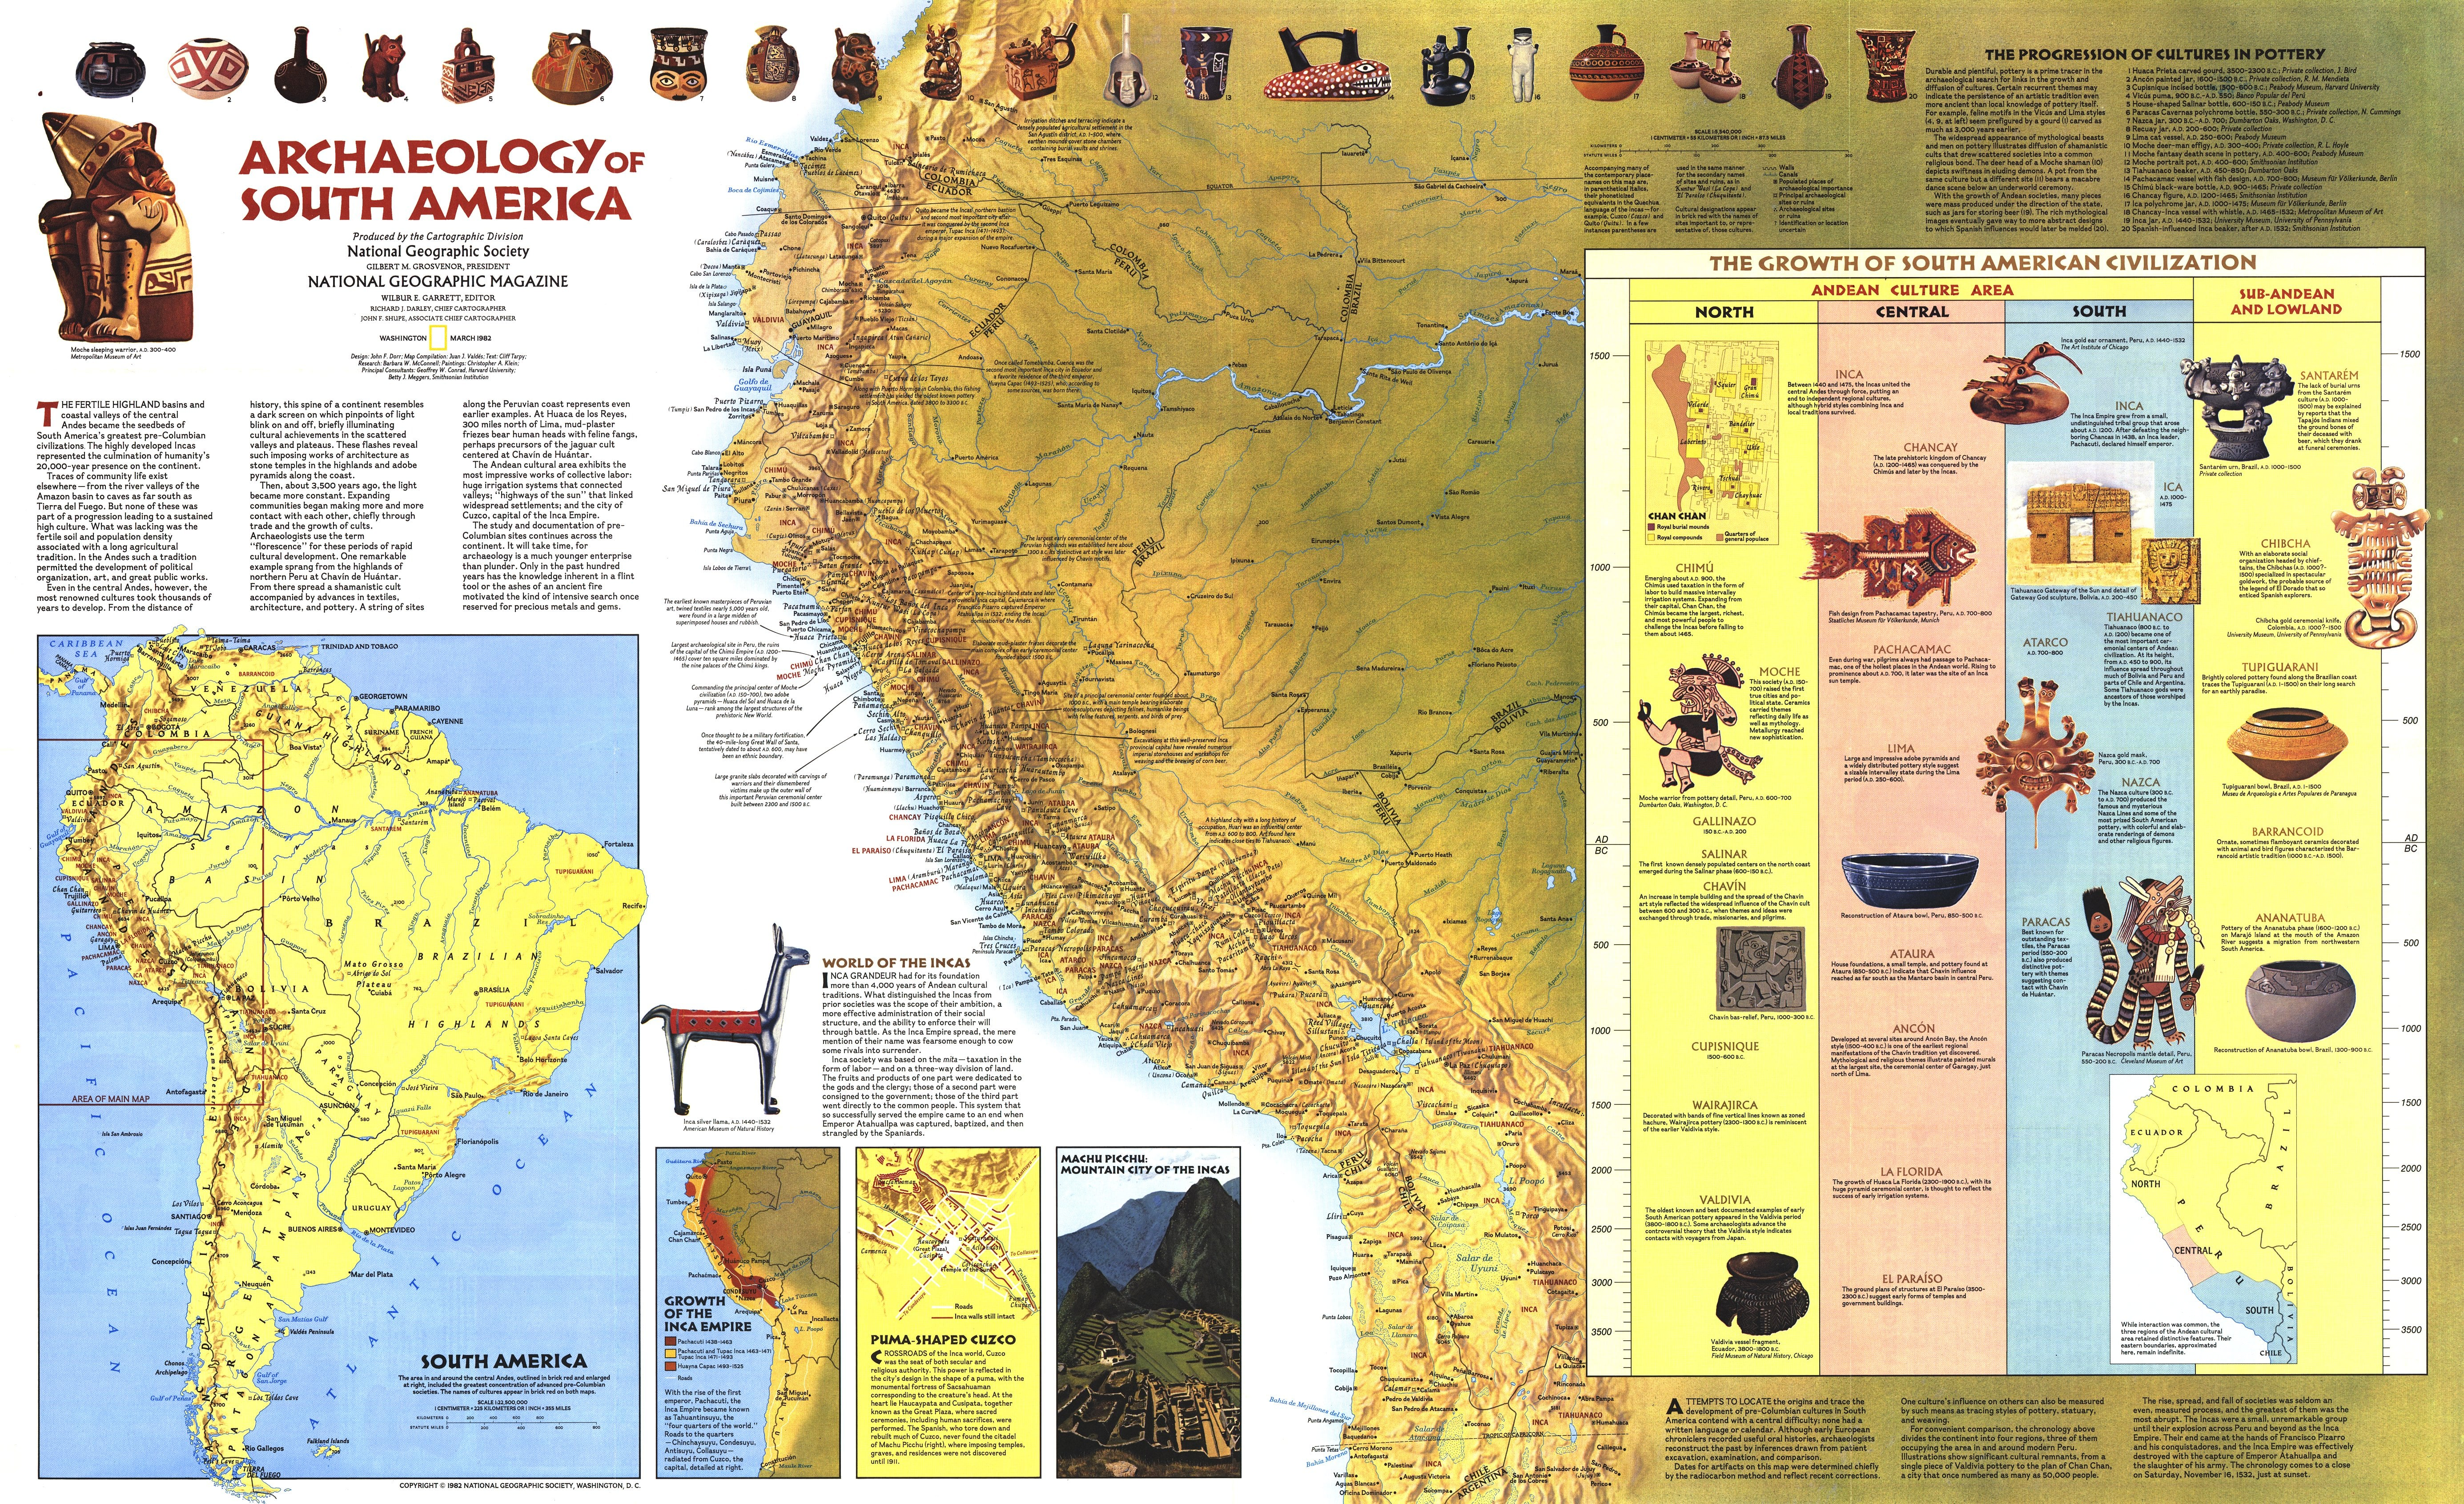 America South America Map.Ngs 1982 Archaelogy Of South America Map